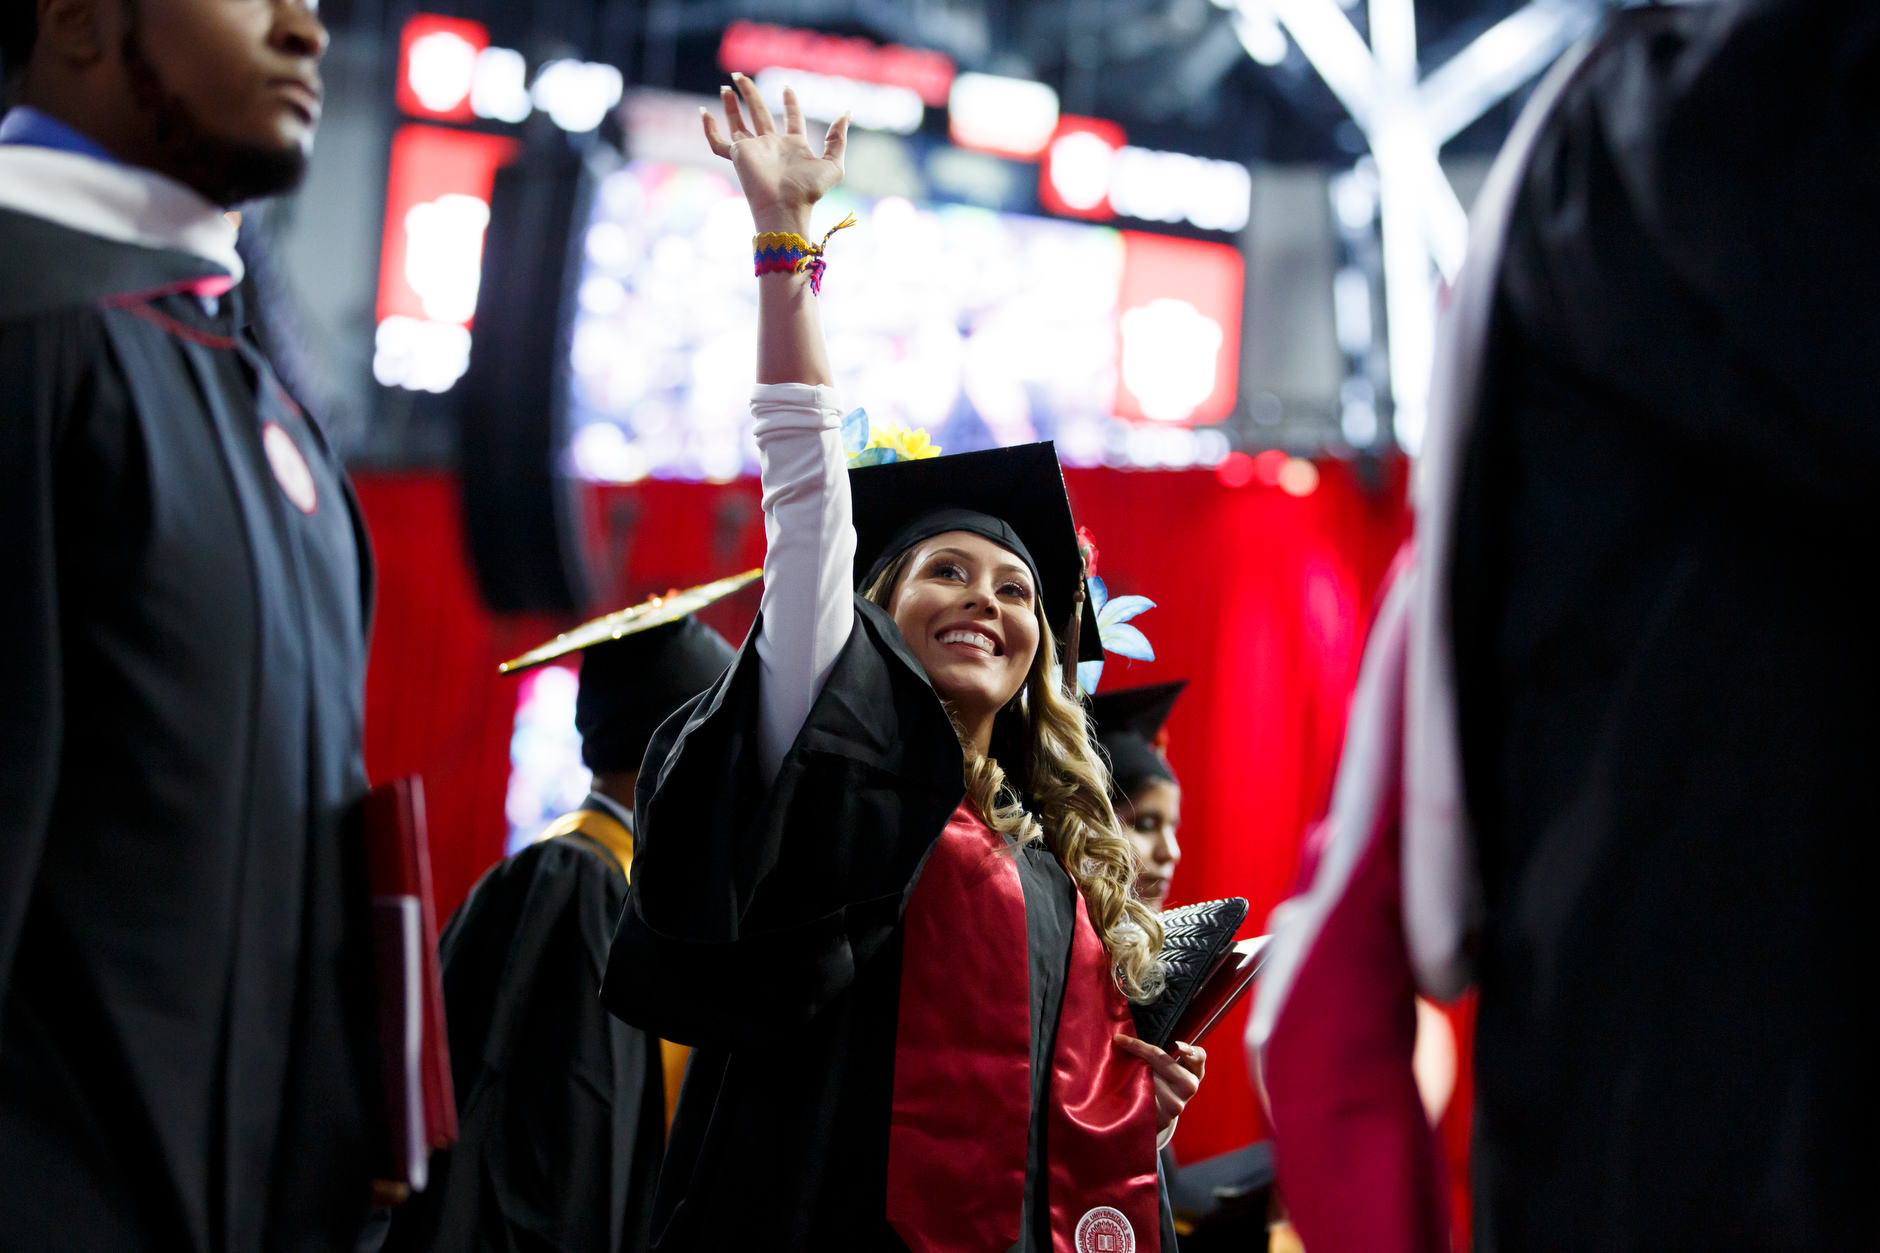 A graduate waves to friends in the audience during the recessional at IUPUI Commencement at Lucas Oil Stadium on Saturday, May 11, 2019. (James Brosher/Indiana University)